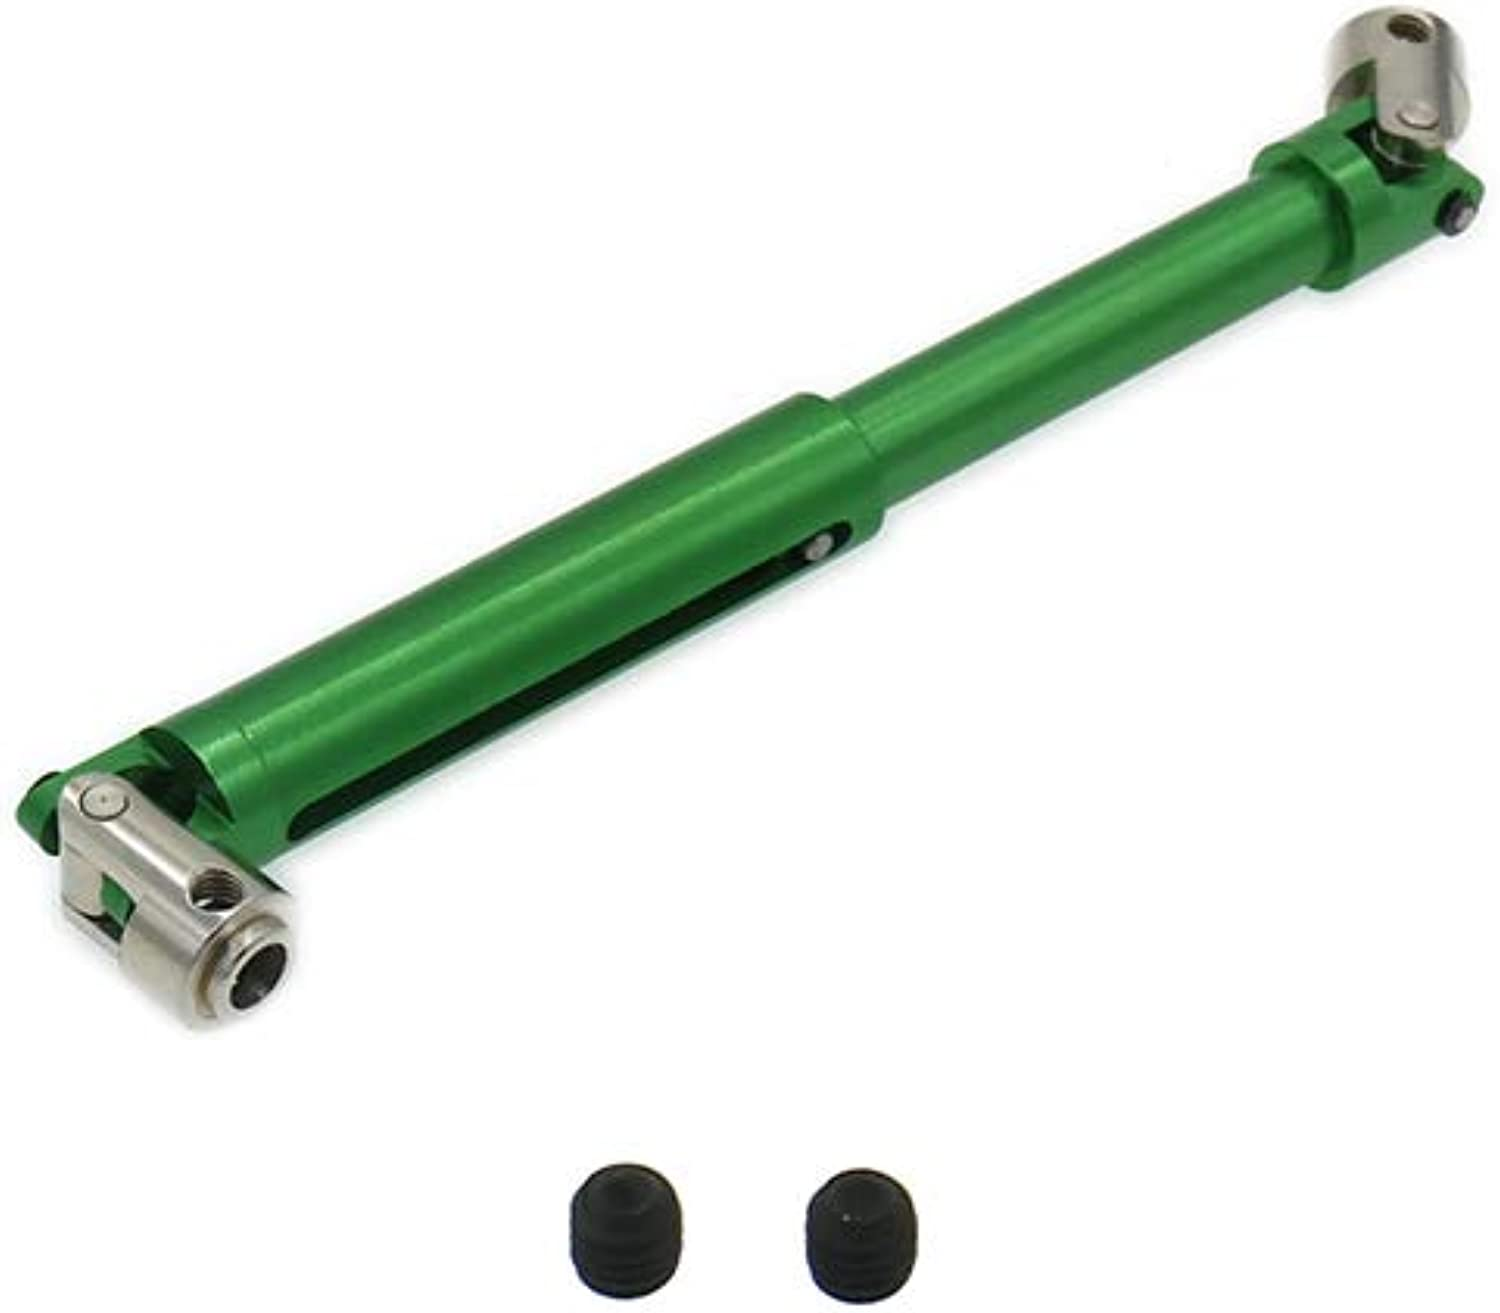 1PC Aluminum Universal Drive Shaft for 1 10 Rc Hobby Model Car Axial Yeti AX31017 90026 90025 Driven Shaft RCAWD Alloy   Green